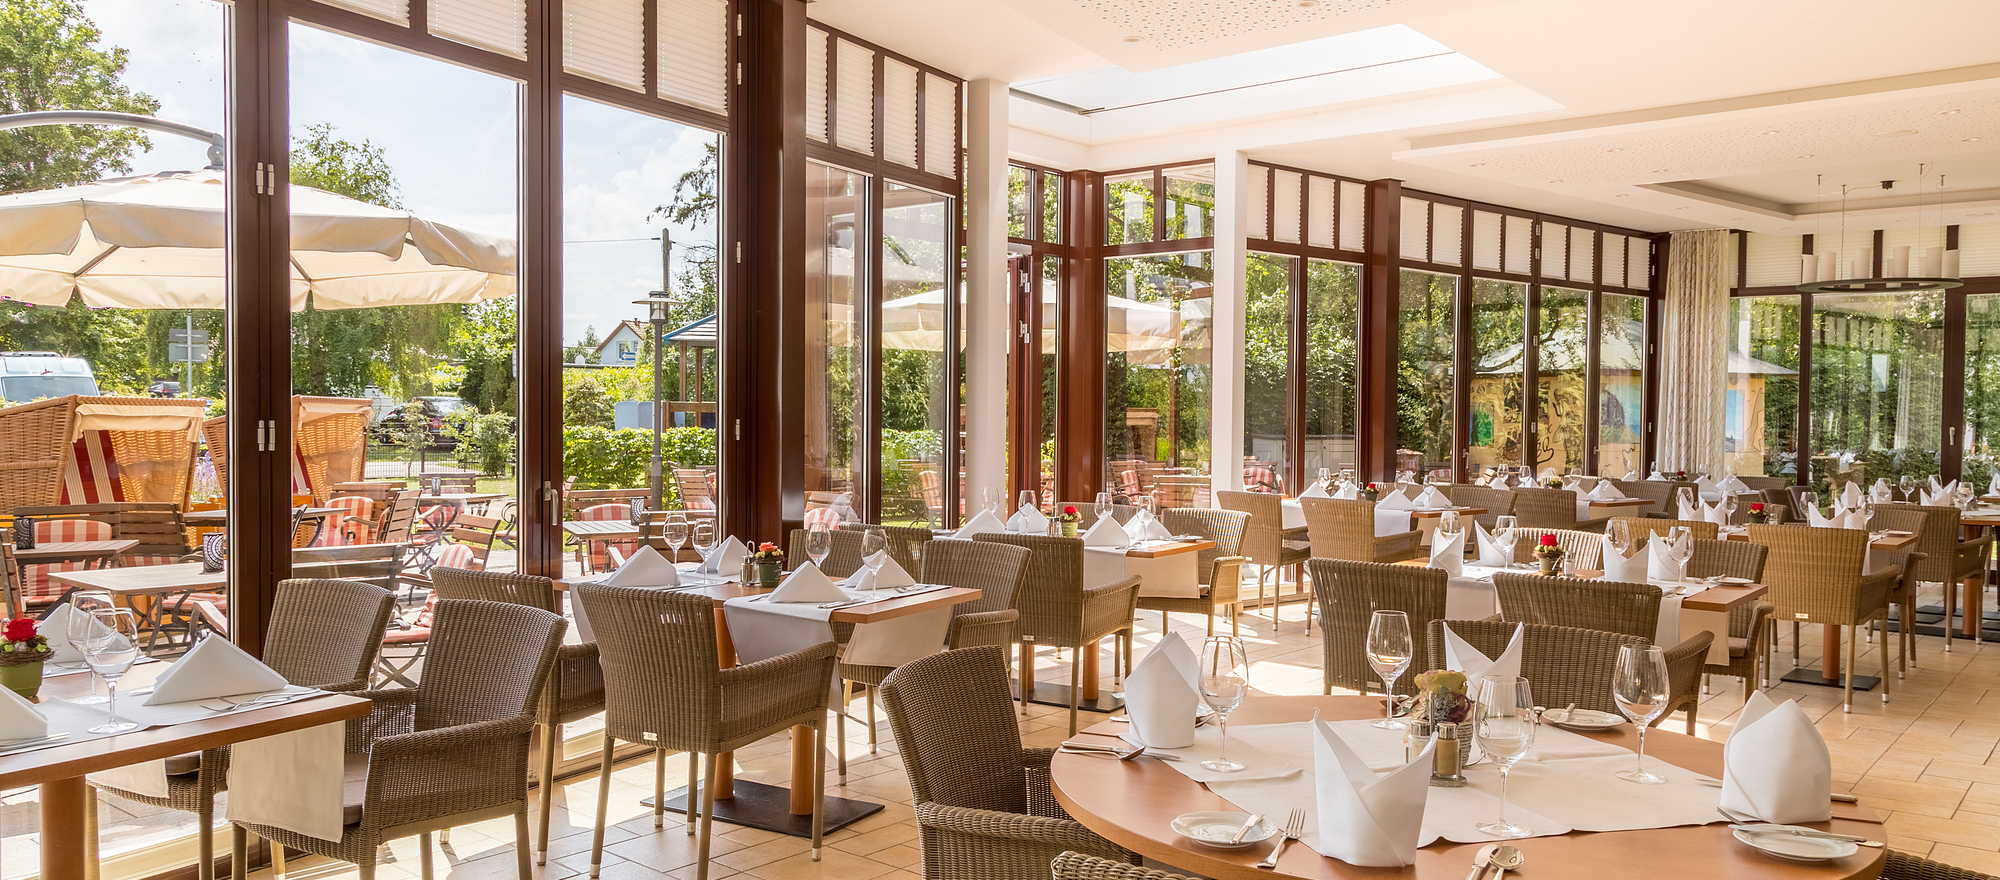 Seasonal, fresh and regional cuisine at the 4-star hotel Ringhotel Warnemuender Hof in Rostock-Warnemuende